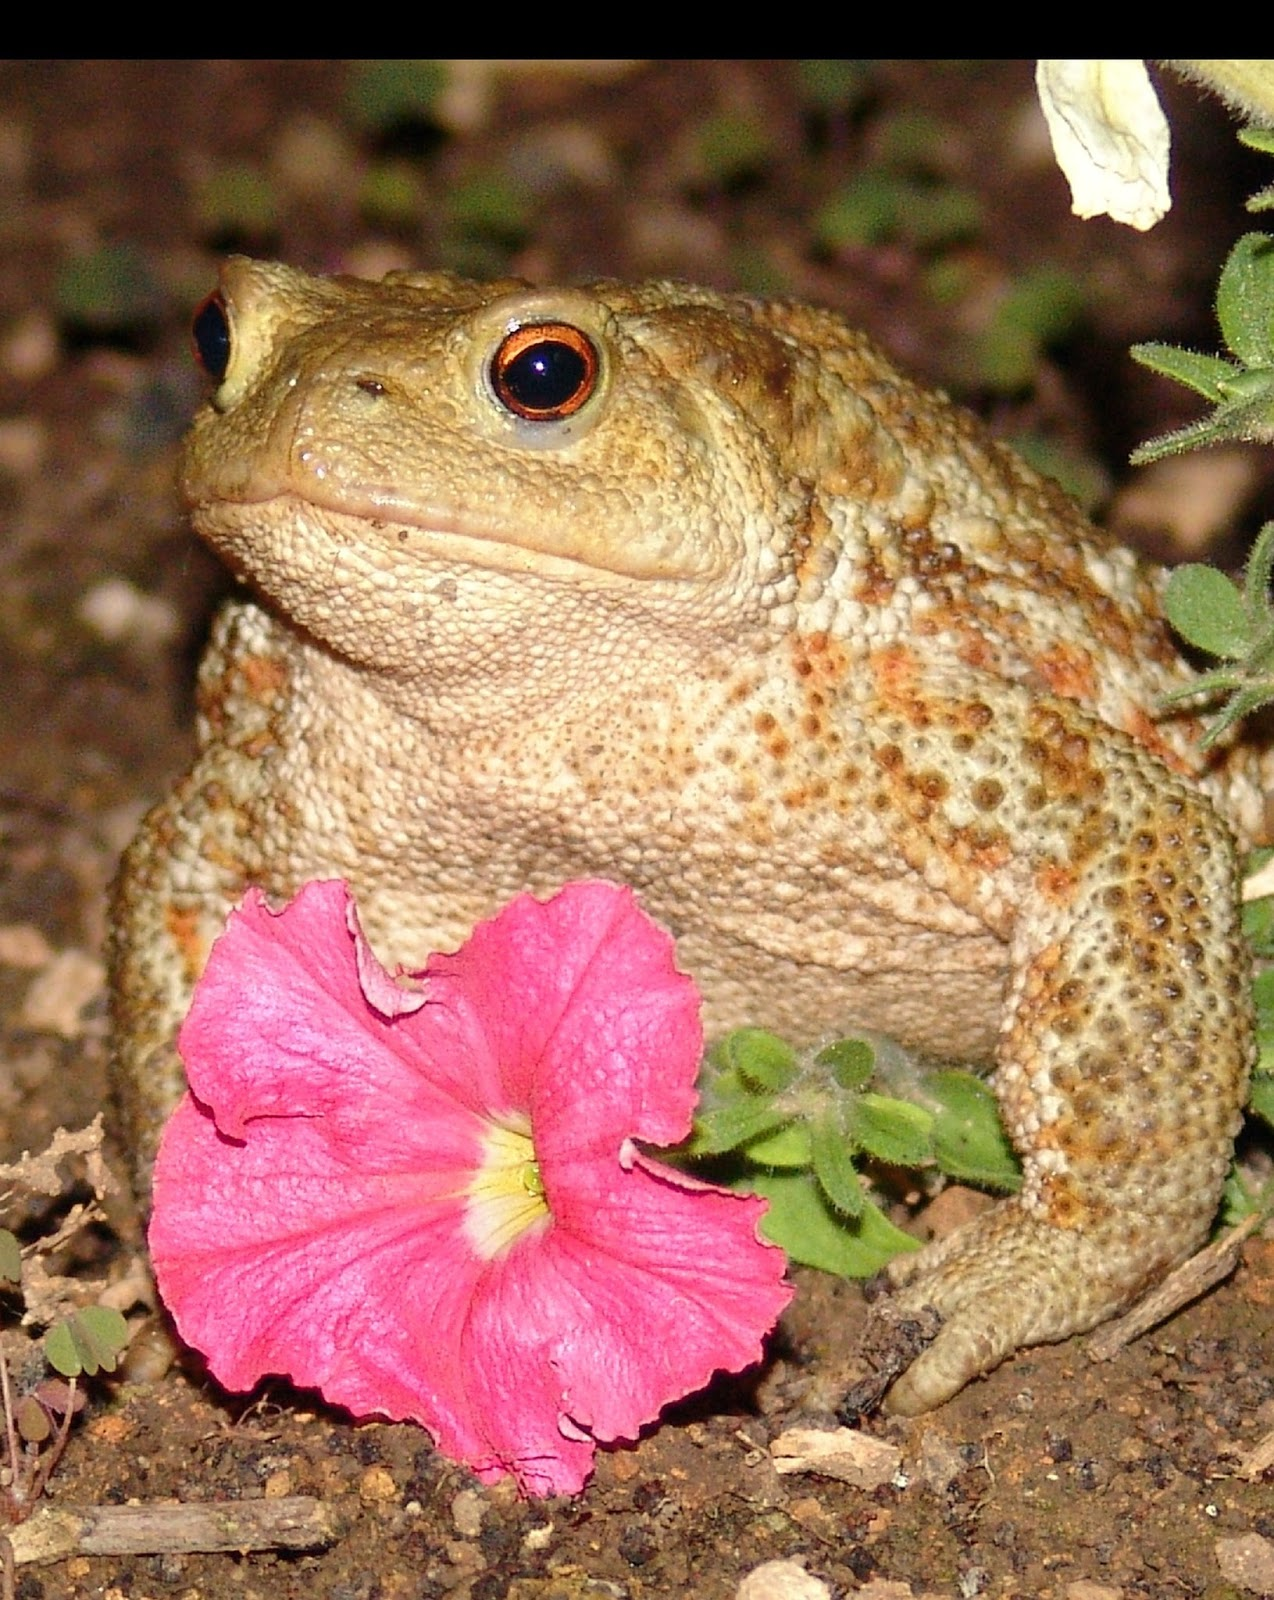 Image of a toad .